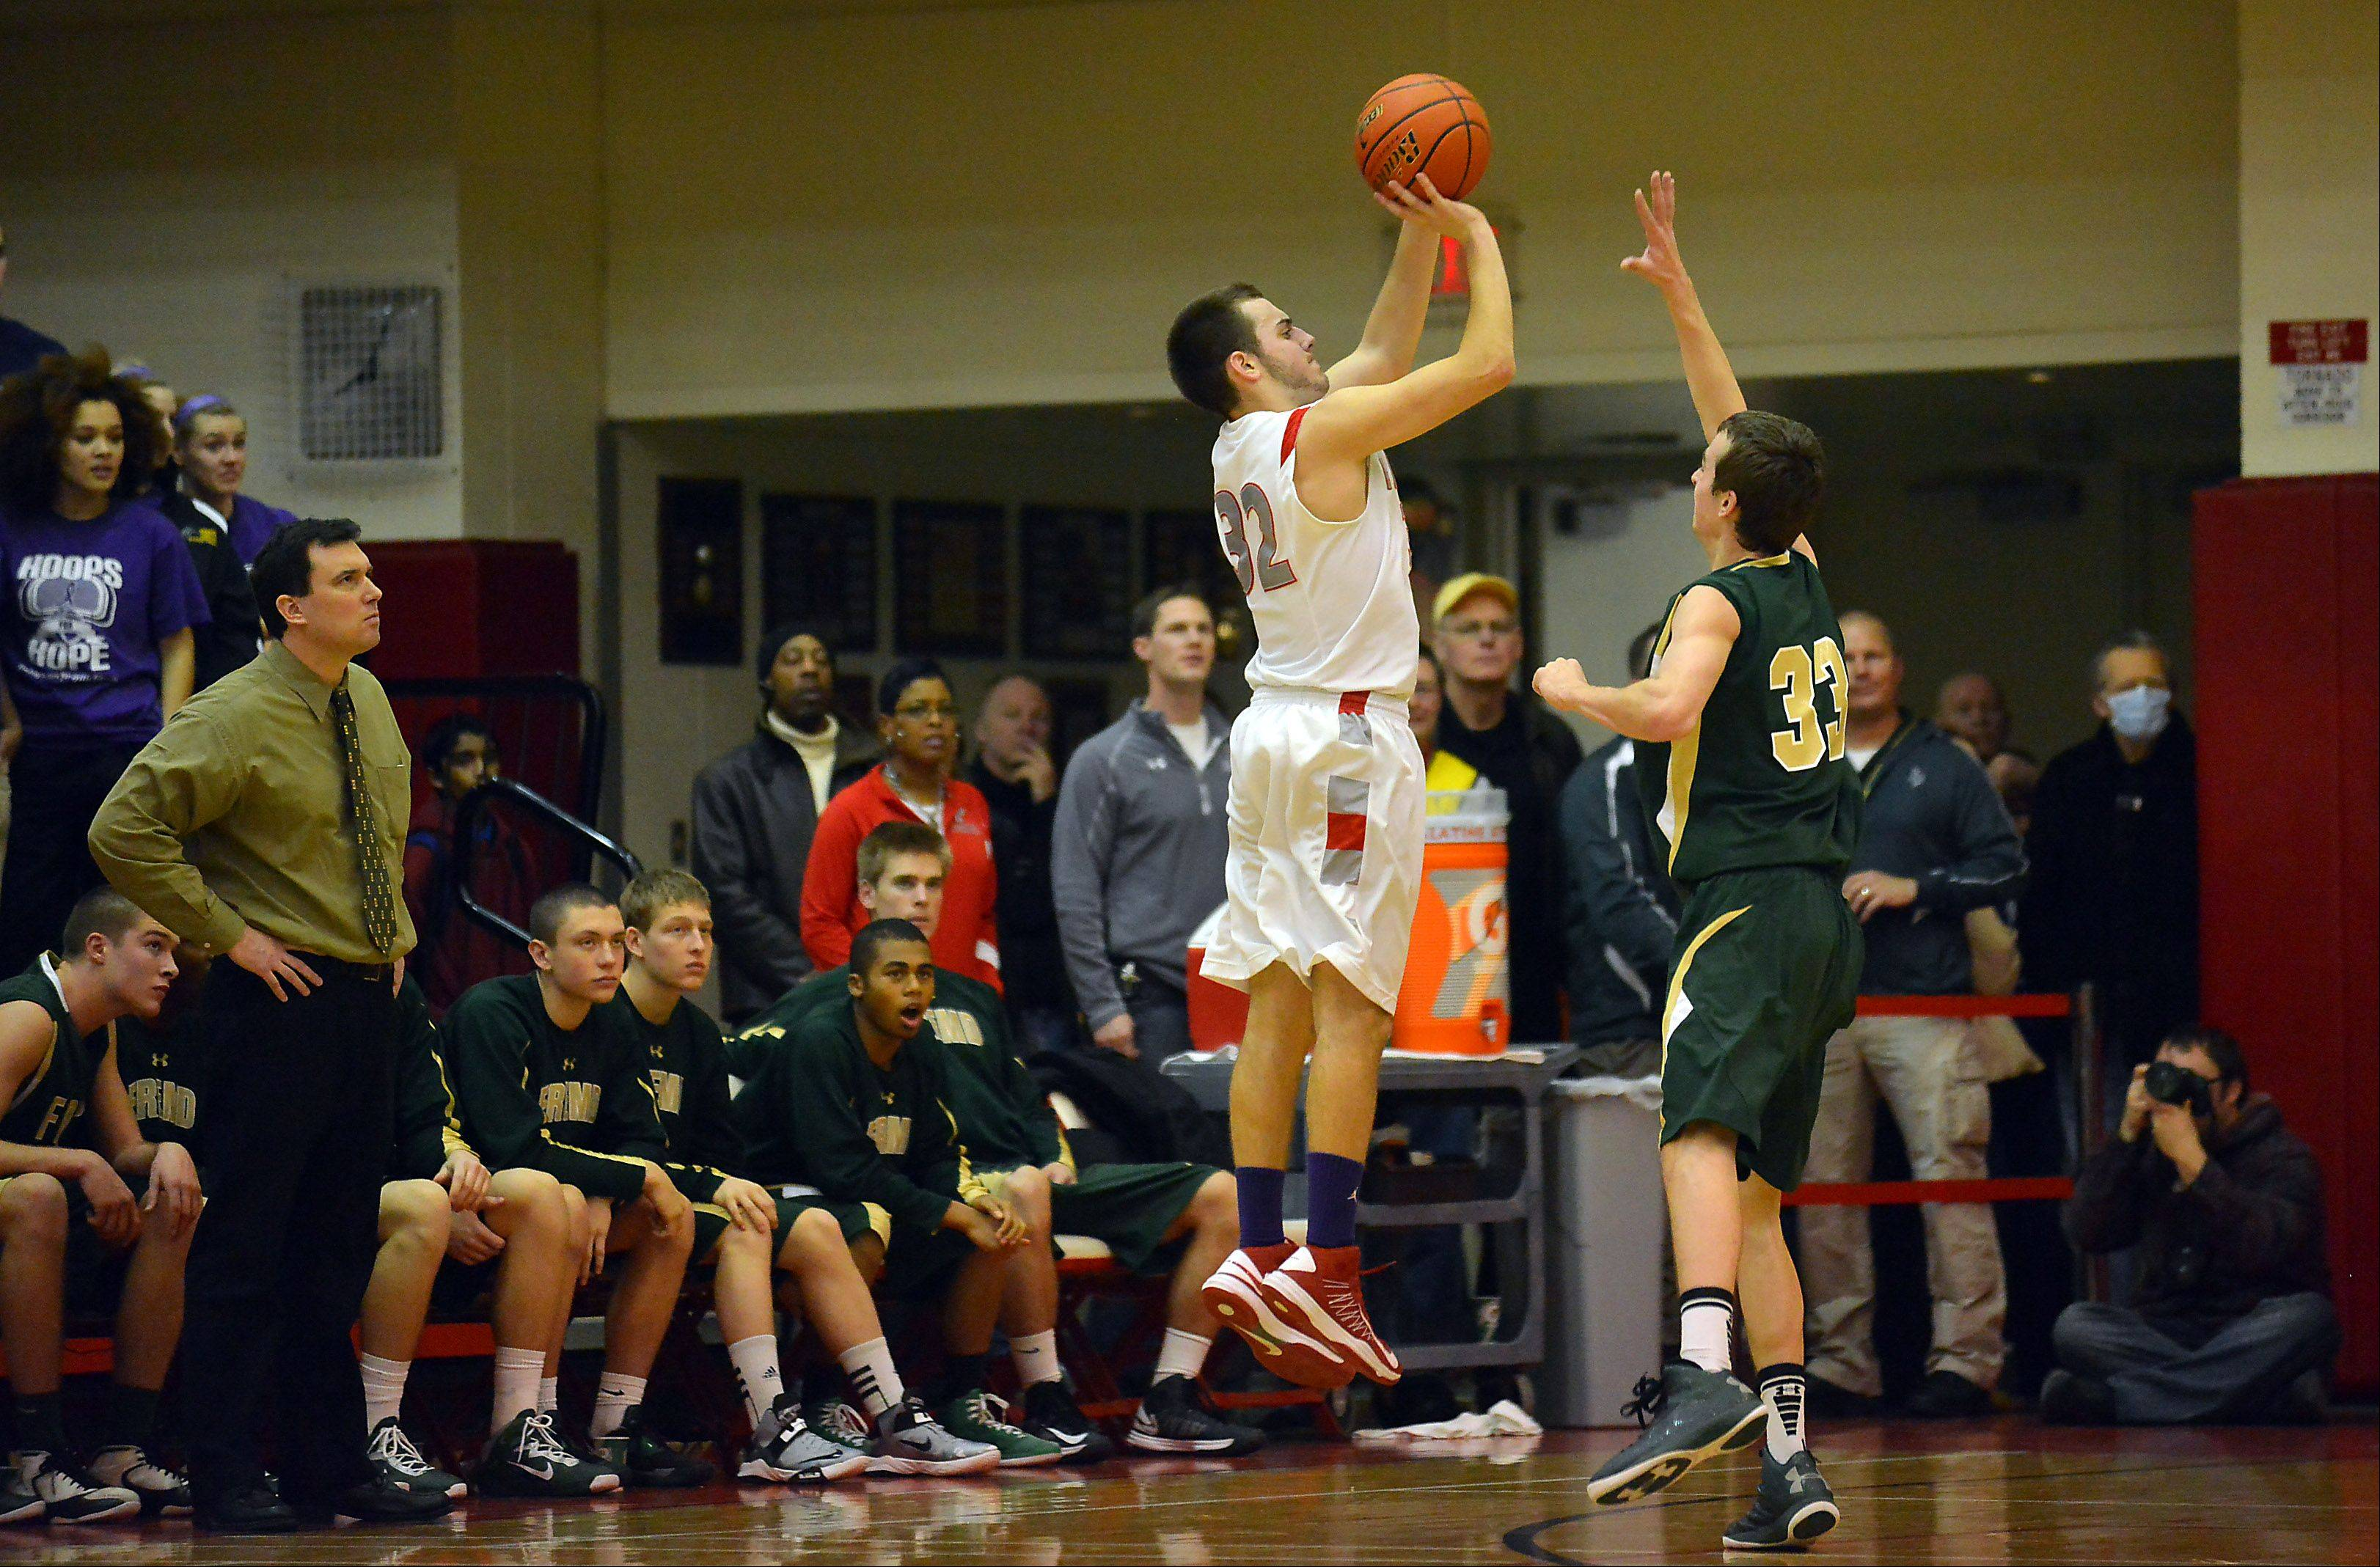 Palatine's Greg Grana shoots over Fremd's Sean Benka as he attempts to block the shot last Friday at Palatine. Both teams remain in the MSL West title hunt with two games left.